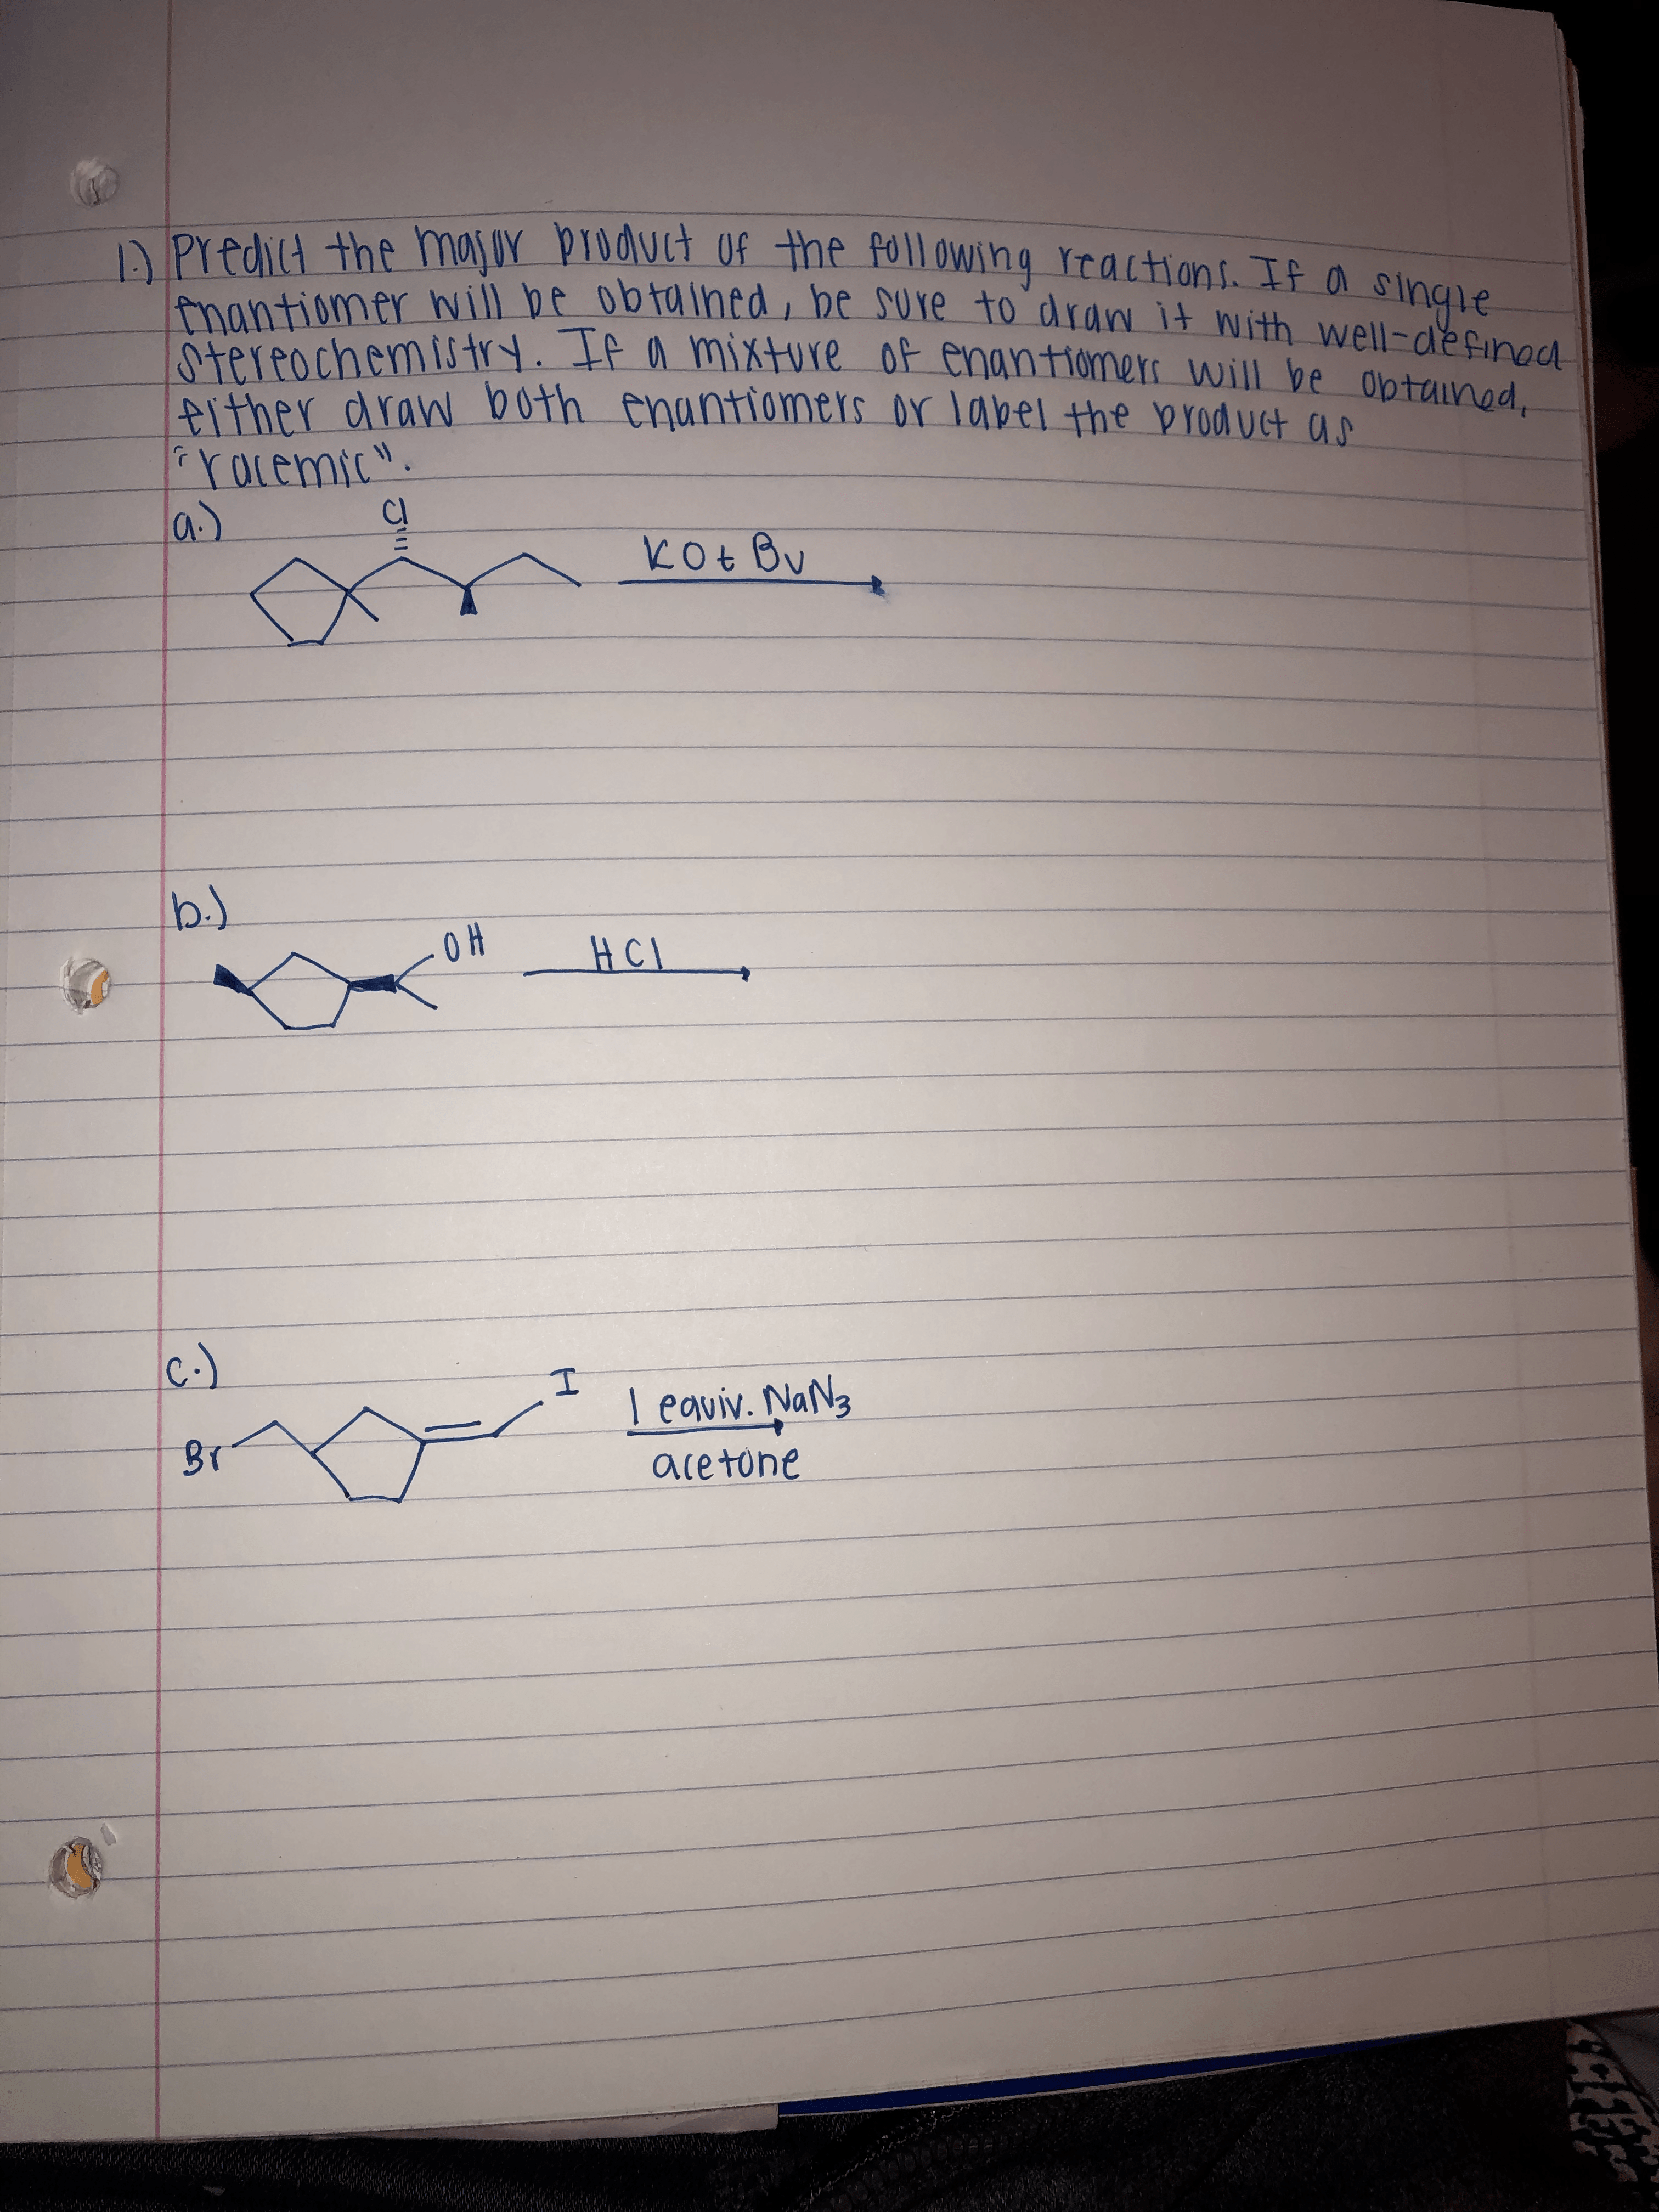 """A Predict the masur broduct Of the foll owing reactions. If a tmantiomer will be obtaihed, be sure to draw it nNith well-defined Stereochemistry. If a mixture of enantiomers will be obtained, Aither draw both enantiomers or label the broduct an rocemic"""". la) single kOt Bu b.) HCI c-) I eaviv. NaN3 BT acetone Jl!"""